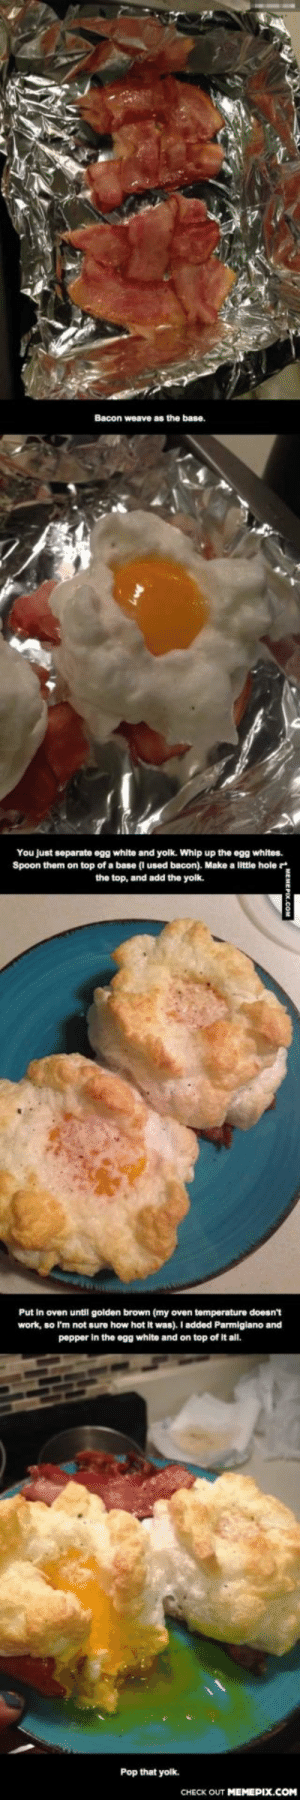 Let's make Egg Clouds!omg-humor.tumblr.com: Bacon weave as the base.  You just separate ogg white and yolk. Whip up the egg whites.  Spoon them on top of a base (I used bacon). Make a little hole  the top, and add the yolk.  Put In oven until golden brown (my oven temperature doesn't  work, so I'm not sure how hot it was). I added Parmigiano and  pepper in the egg white and on top of It all.  Pop that yolk.  CHECK OUT MEMEPIX.COM Let's make Egg Clouds!omg-humor.tumblr.com